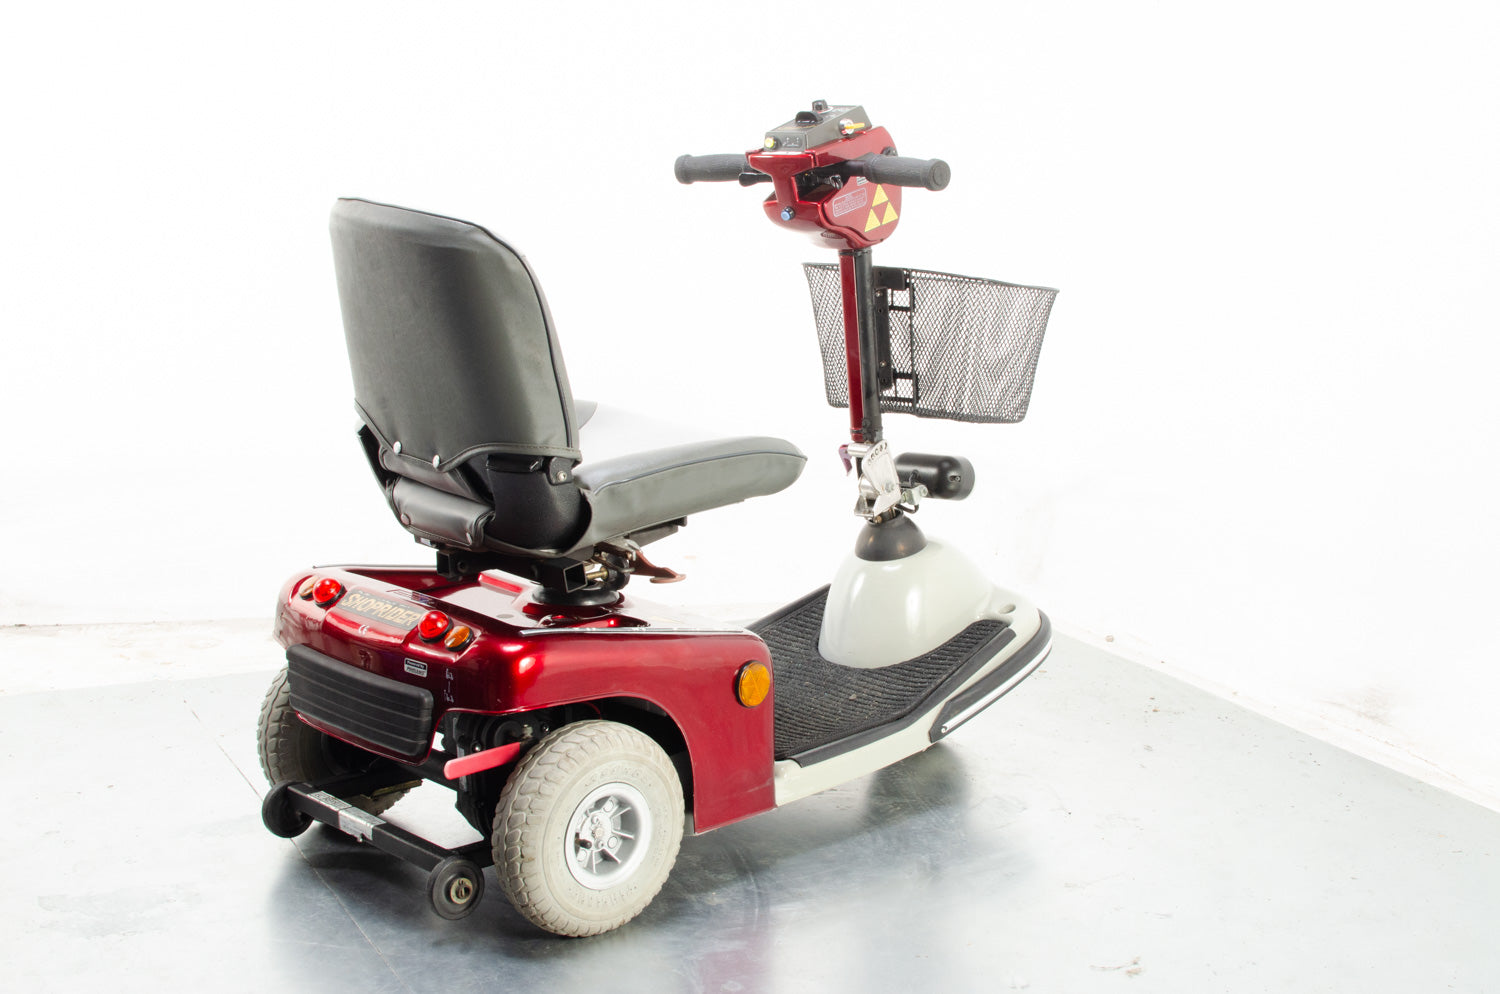 2015 Roma Shoprider Sovereign 3 4mph Mid Size 3 Wheel Trike Mobility Scooter